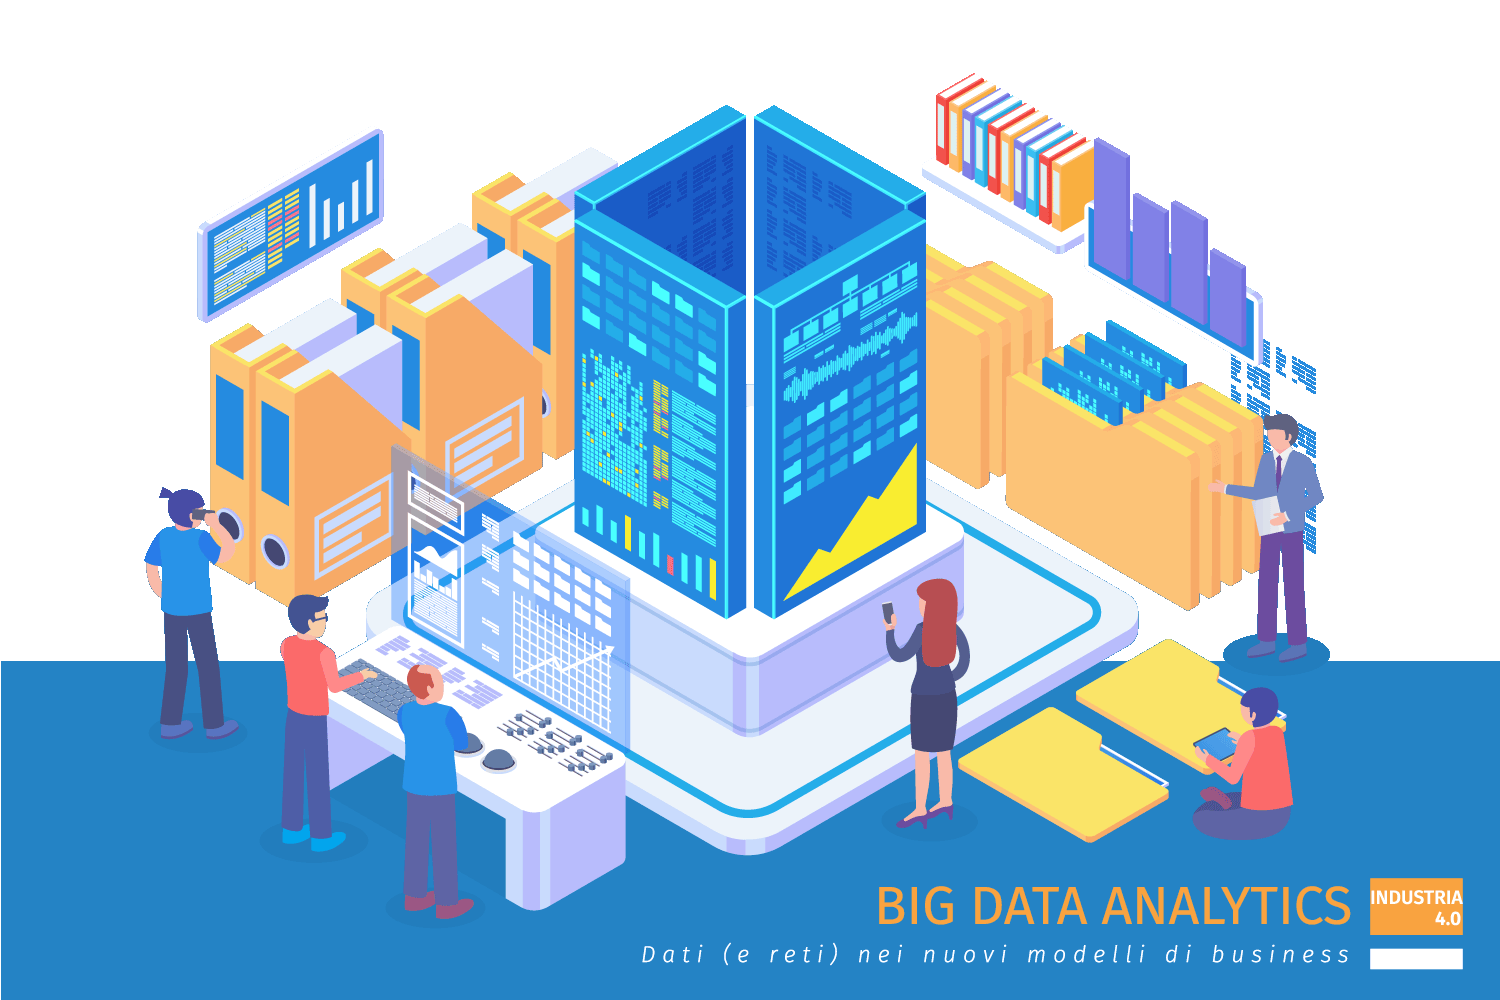 Big data analytics in industria 4.0 e non solo